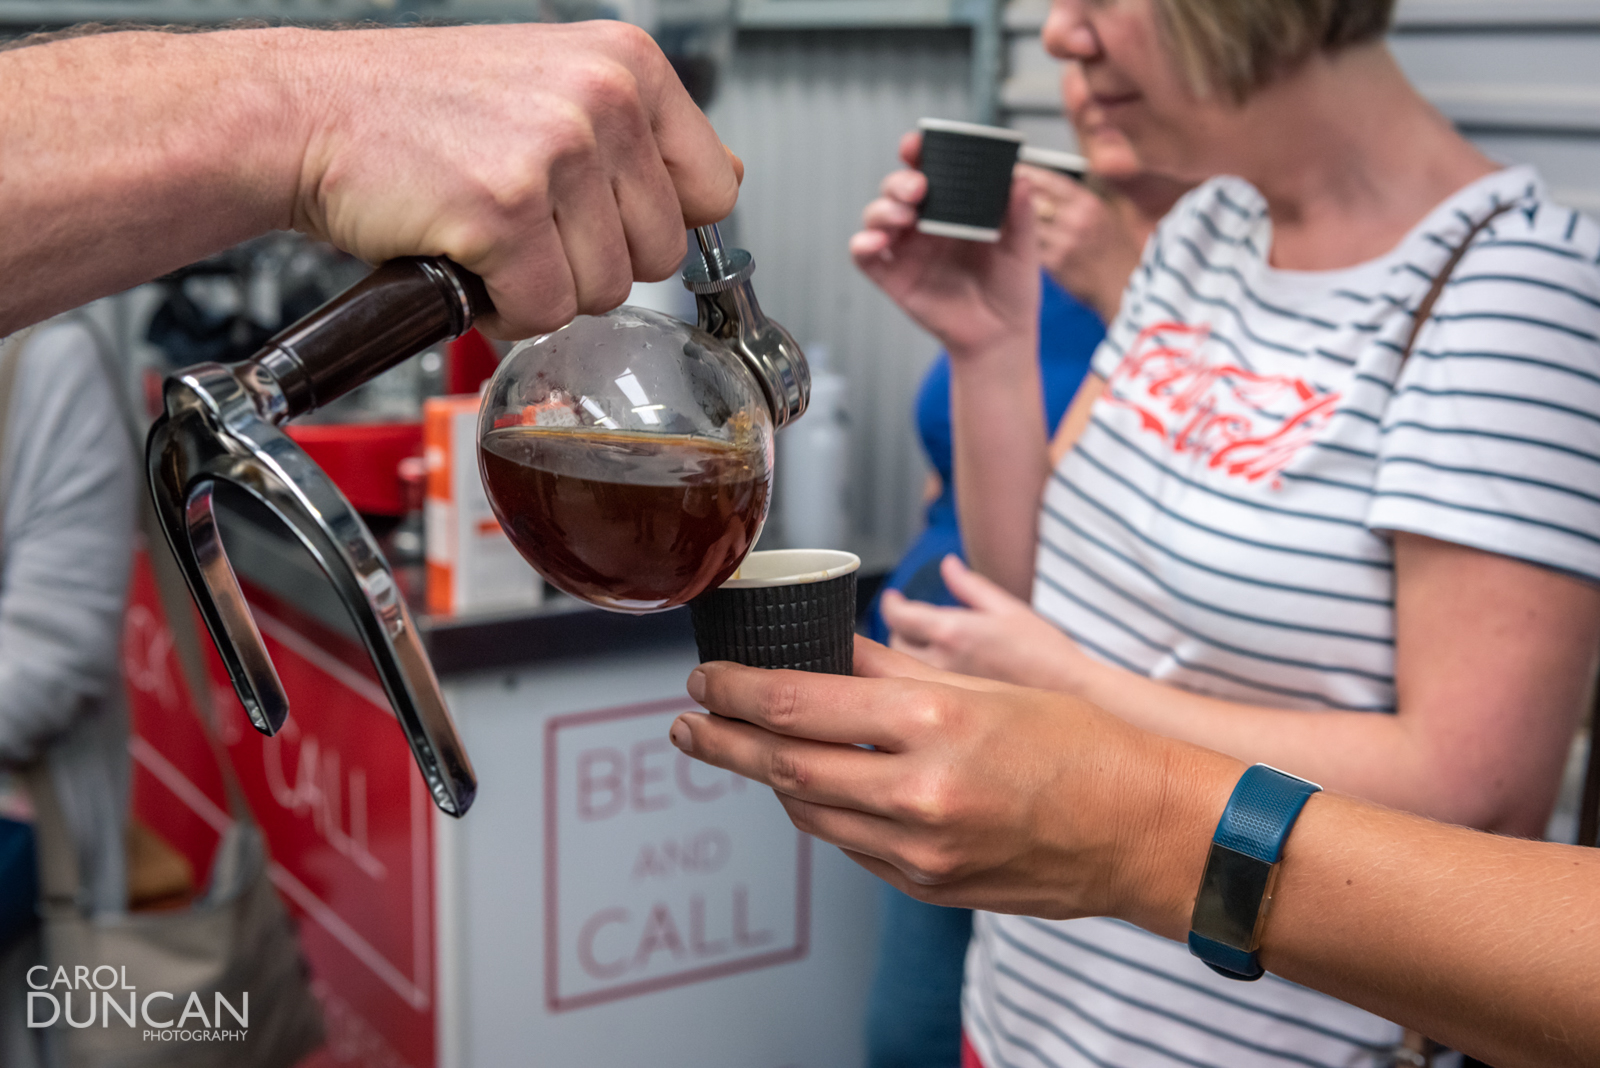 LRes - Home Brews & Baristas at Beck and Call Coffee (92 of 151)-30.jpg